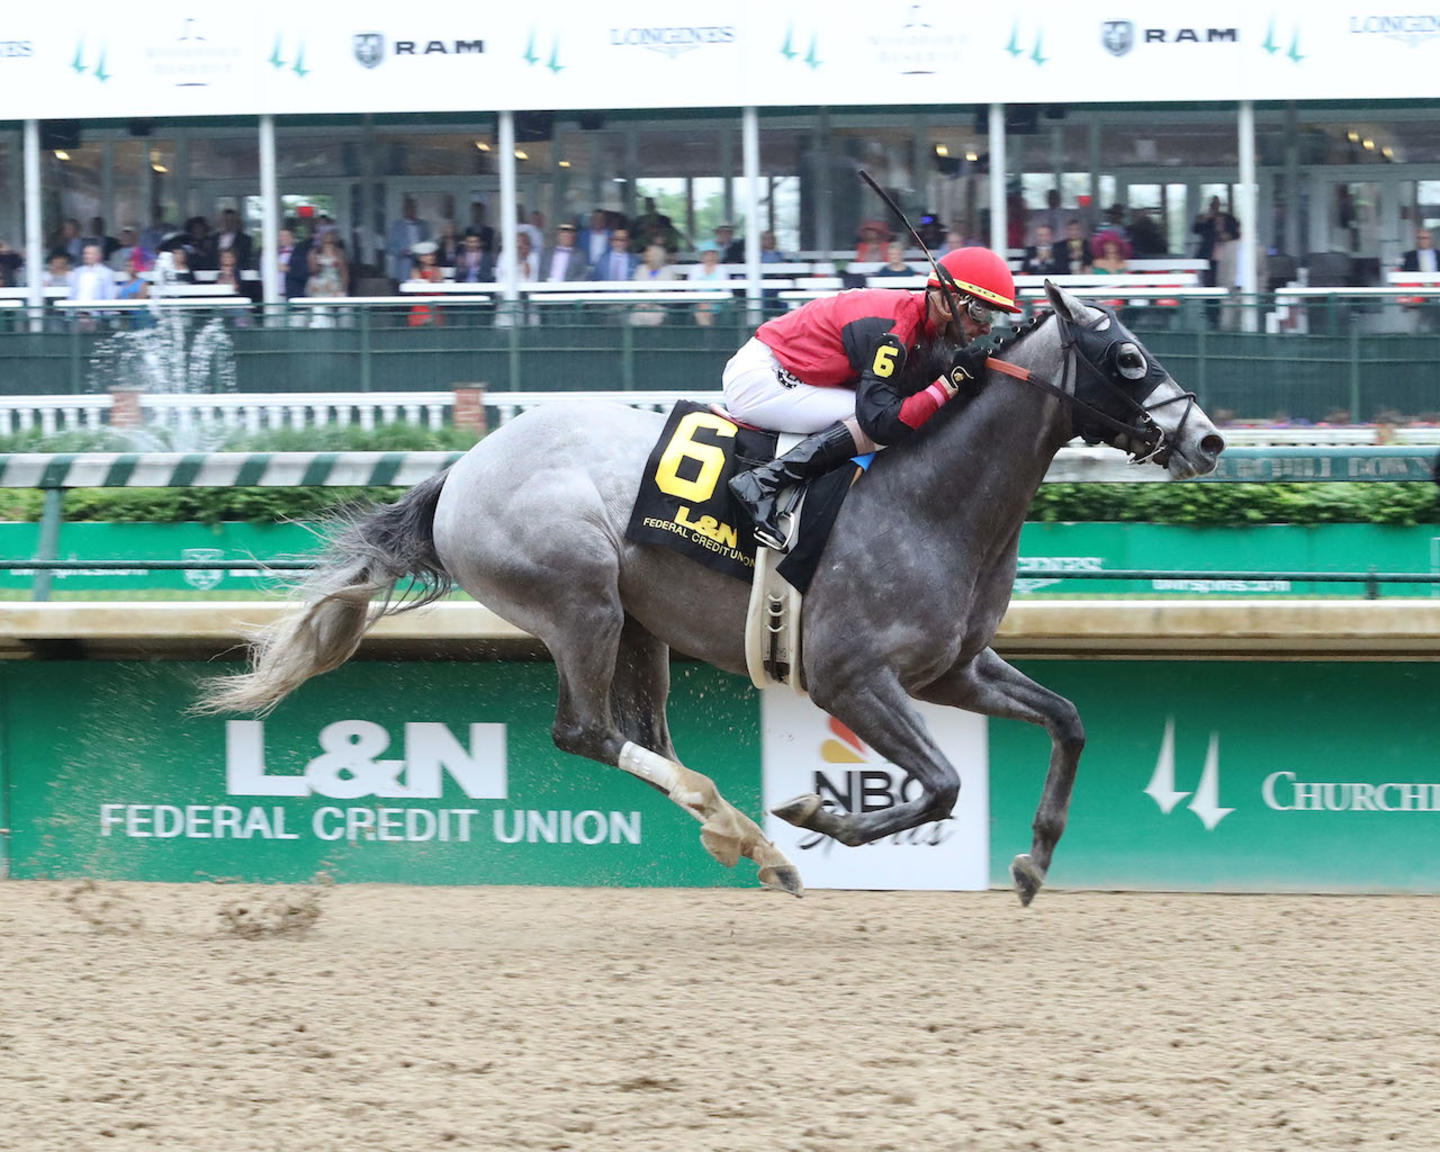 BIG GRAY ROCKET - 05-05-18 - R02 - CD - Finish 01